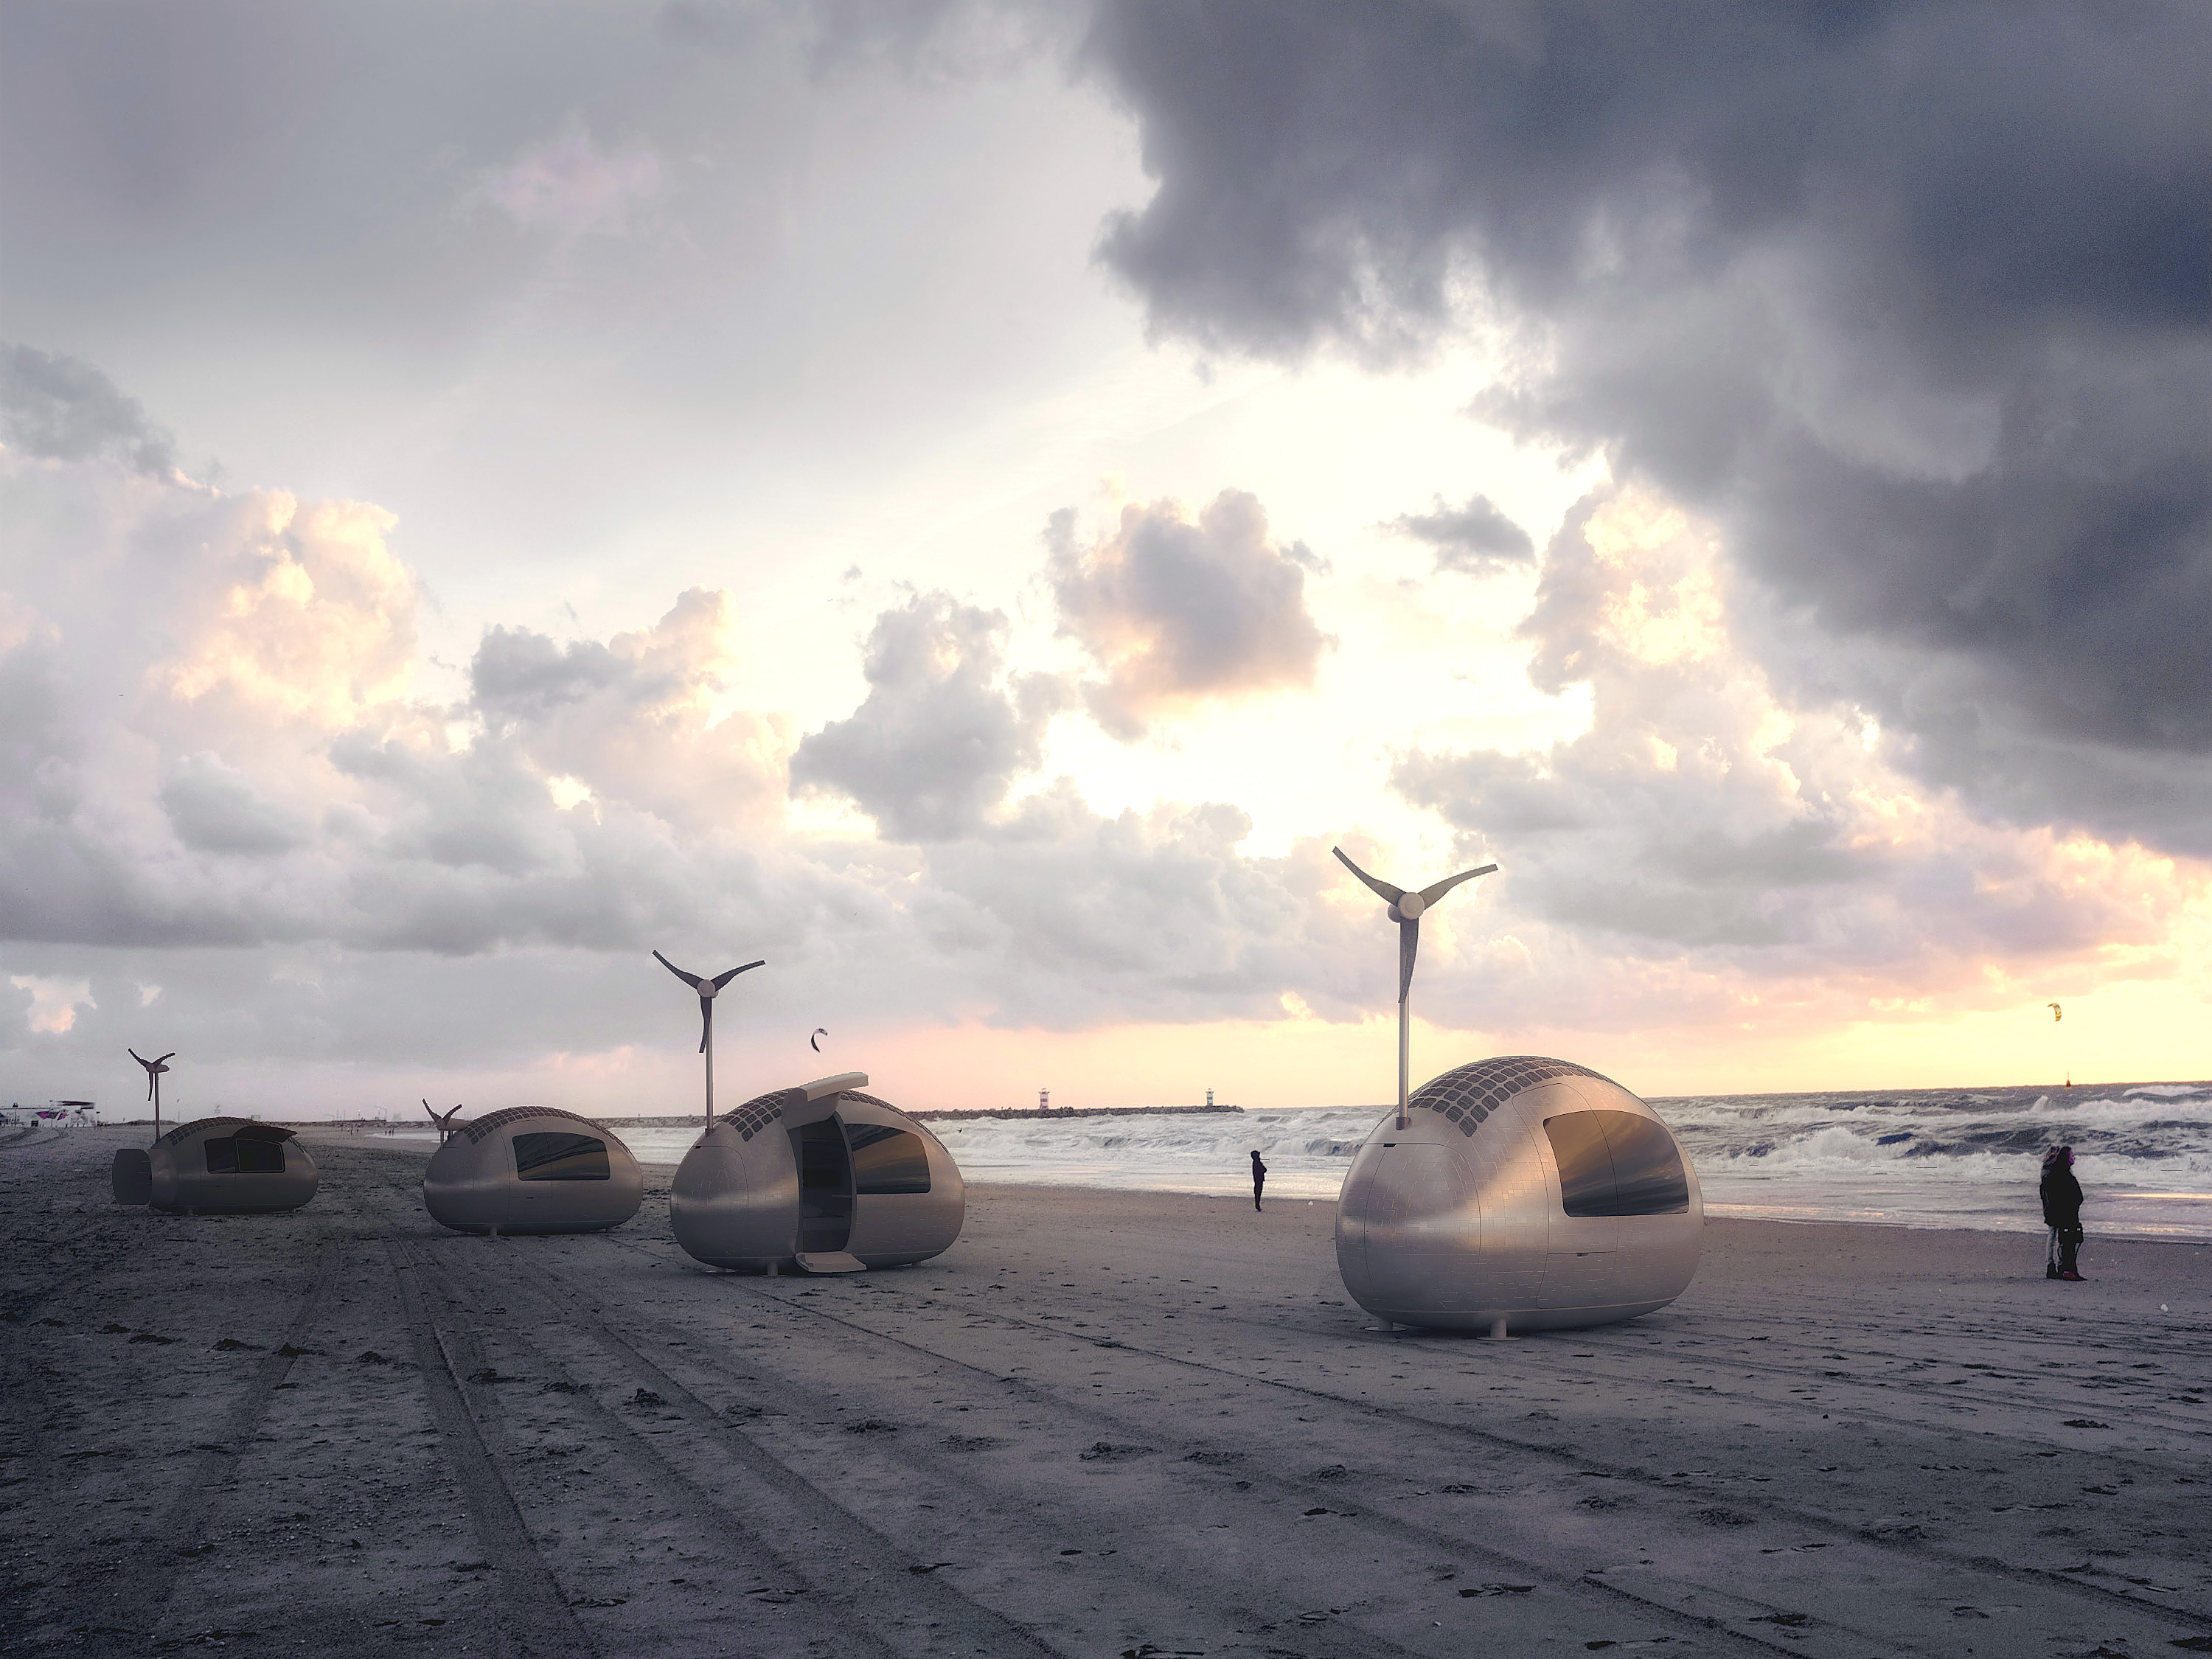 Four Ecocapsules, solar and wind powered tiny homes on wheels, are on the beach.